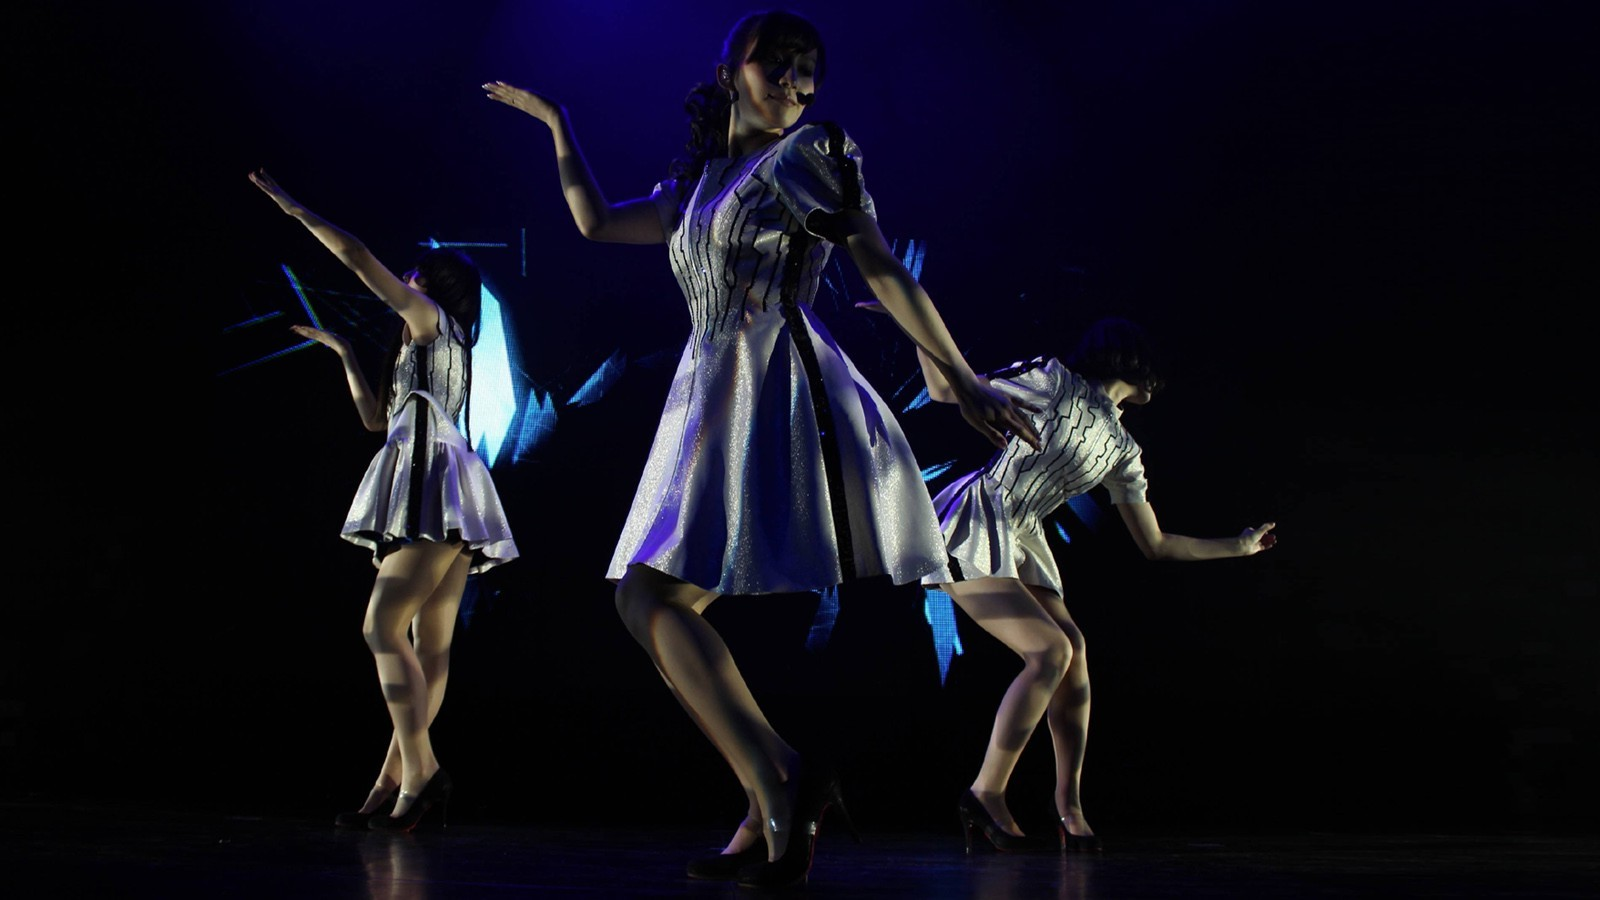 3d Hologram Wallpaper For Pc Perfume Perfume Band J Pop Concerts Costumes